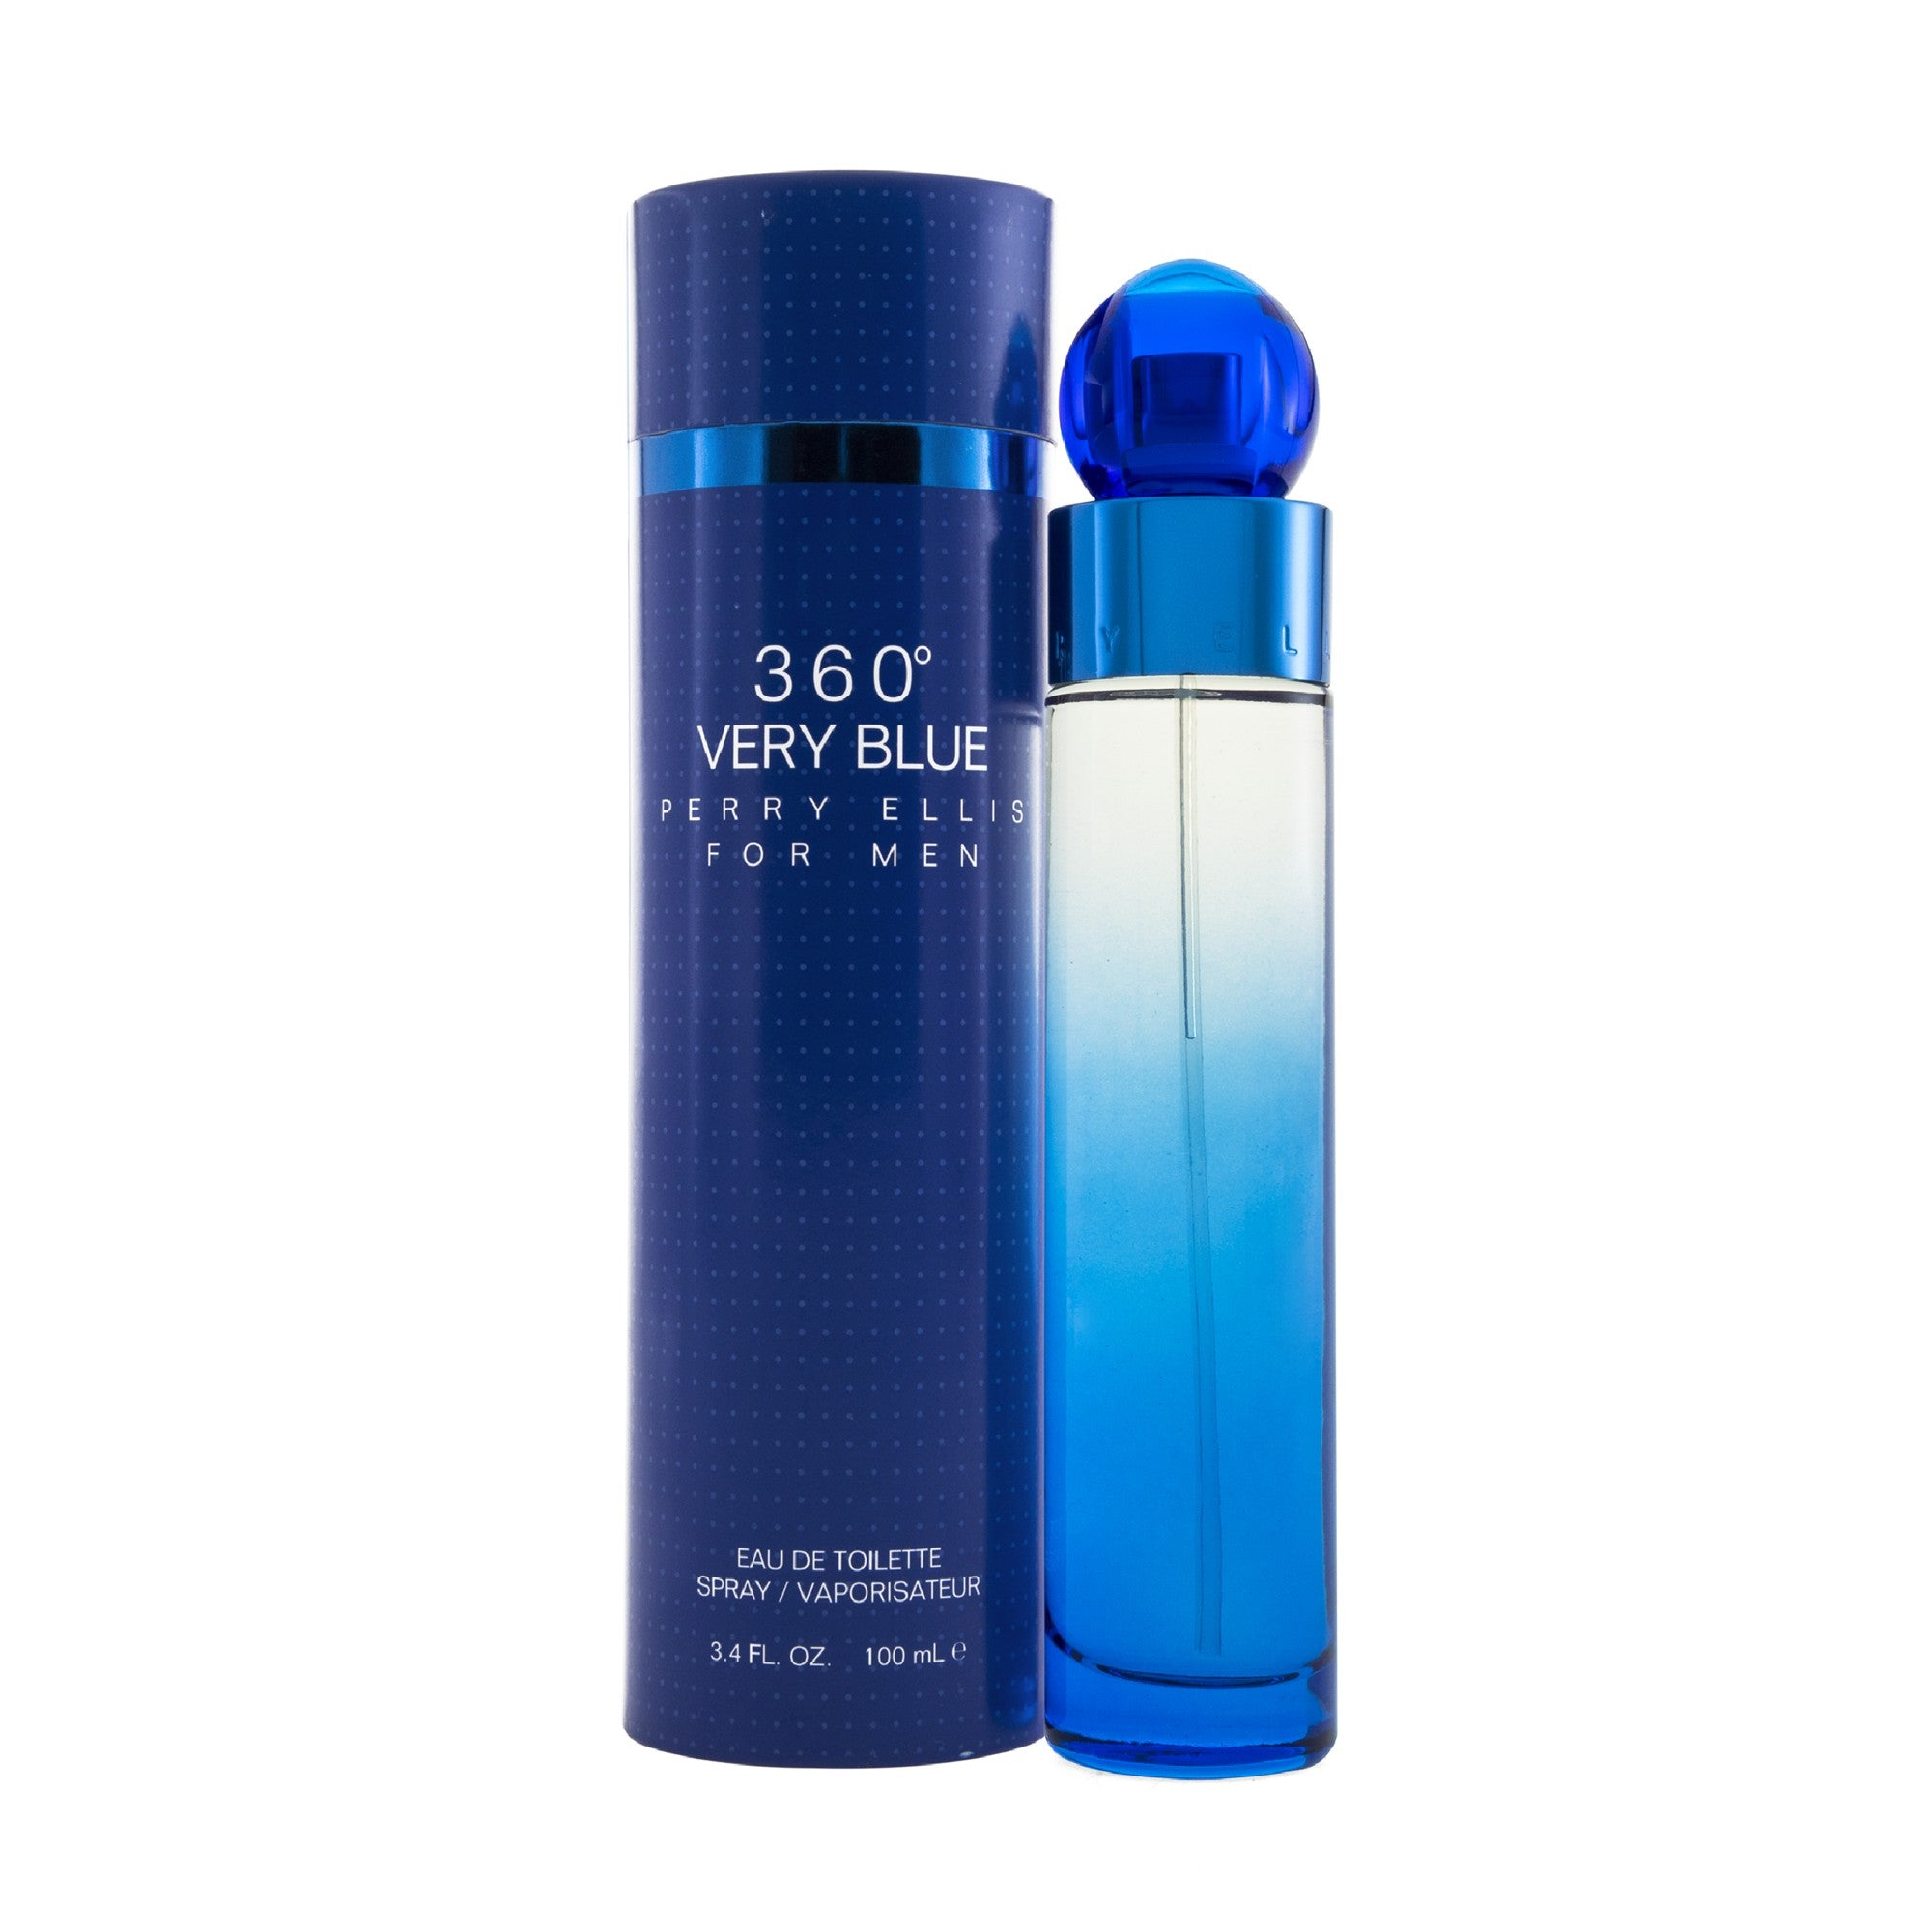 PERRY ELLIS  -  360° VERY BLUE